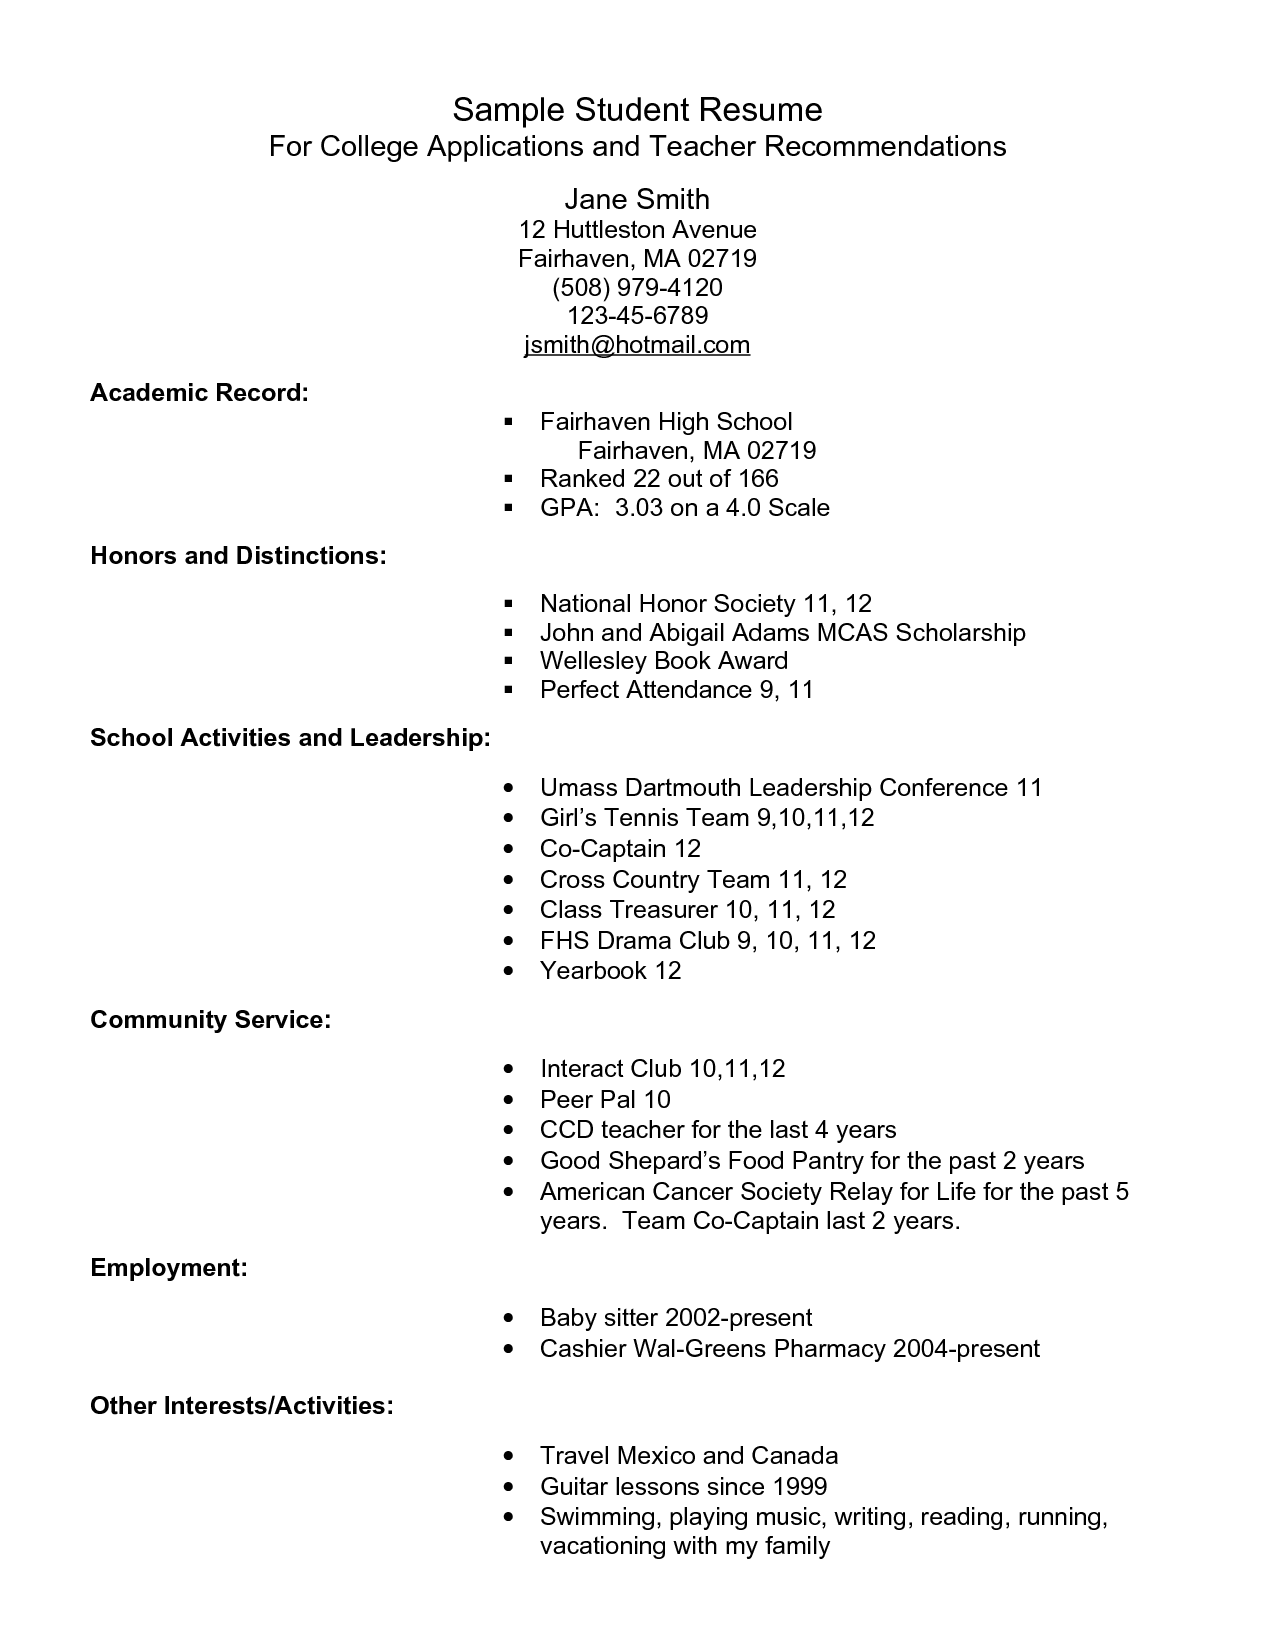 Example Resume For High School Students For College Applications Sample Student  Resume   PDF By Smapdi59  How To Make A Resume As A Highschool Student